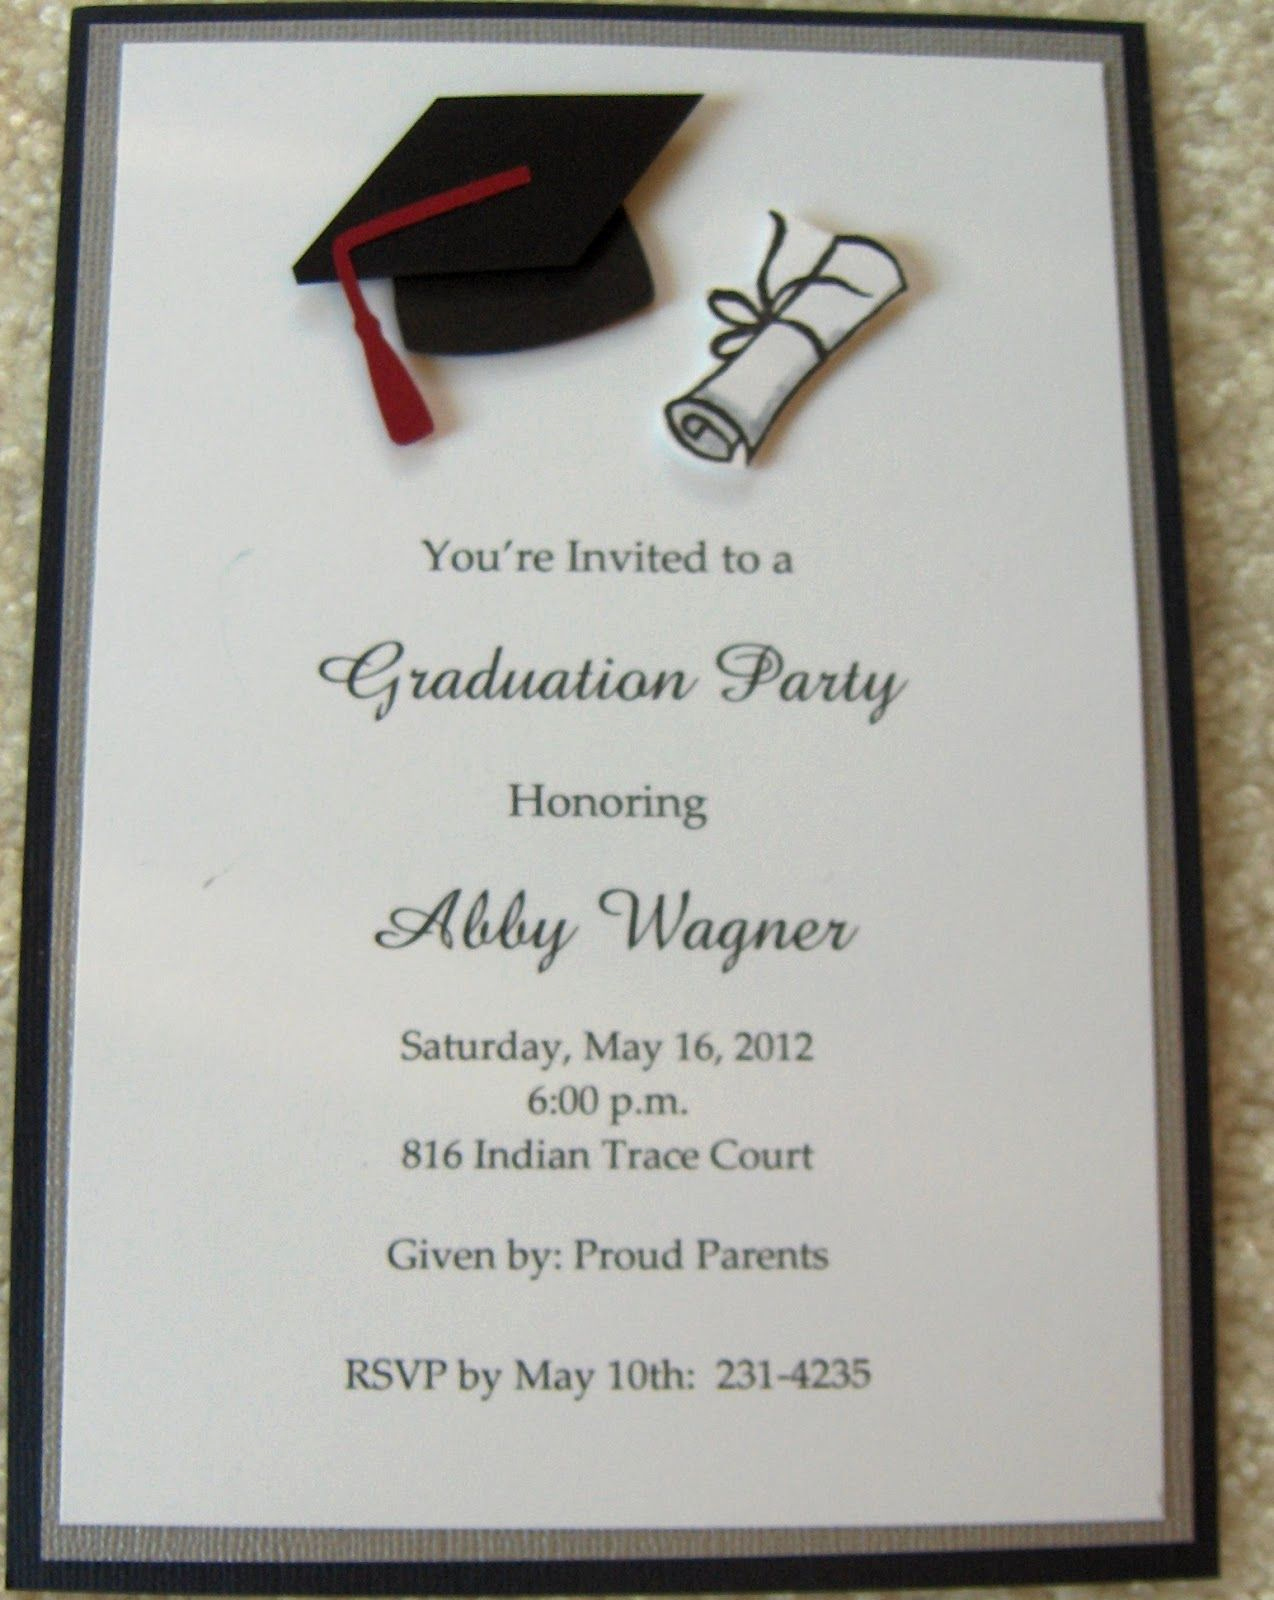 Graduation Party Invitation Cards Luxury Graduation Invitations Google Search